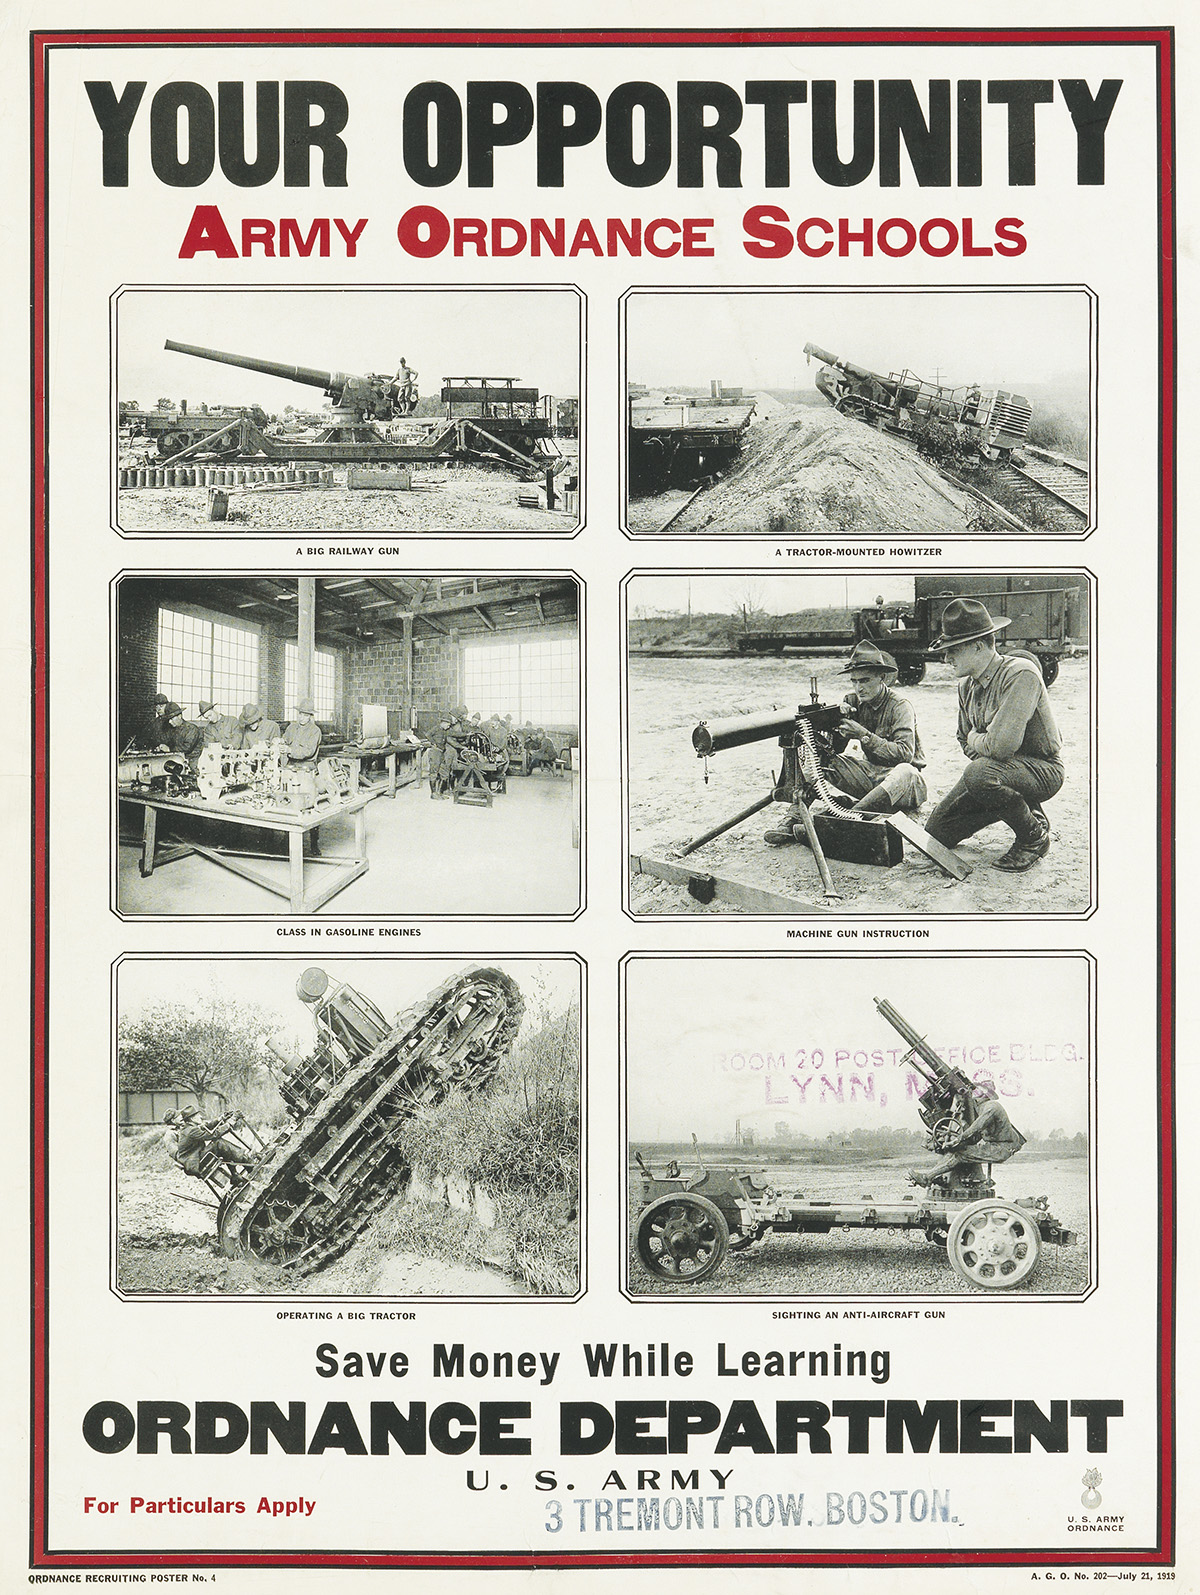 DESIGNER-UNKNOWN-YOUR-OPPORTUNITY--ARMY-ORDNANCE-SCHOOLS-191